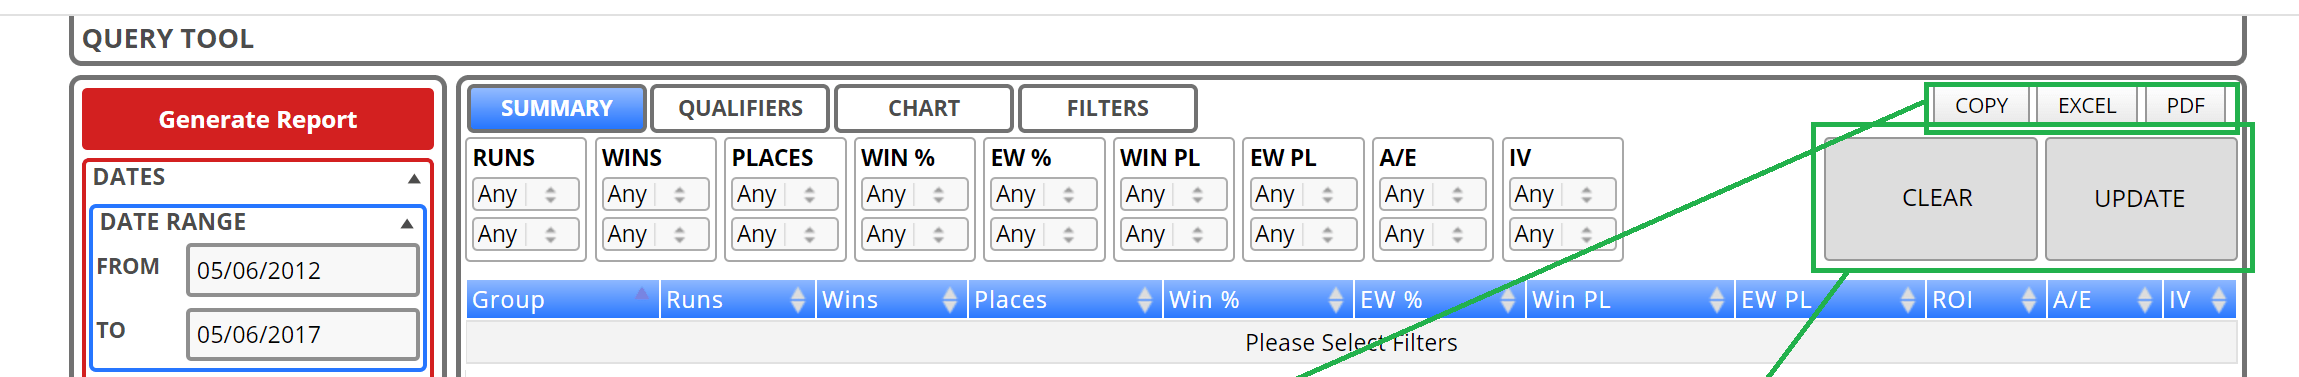 Filtering Query Tool results is now possible